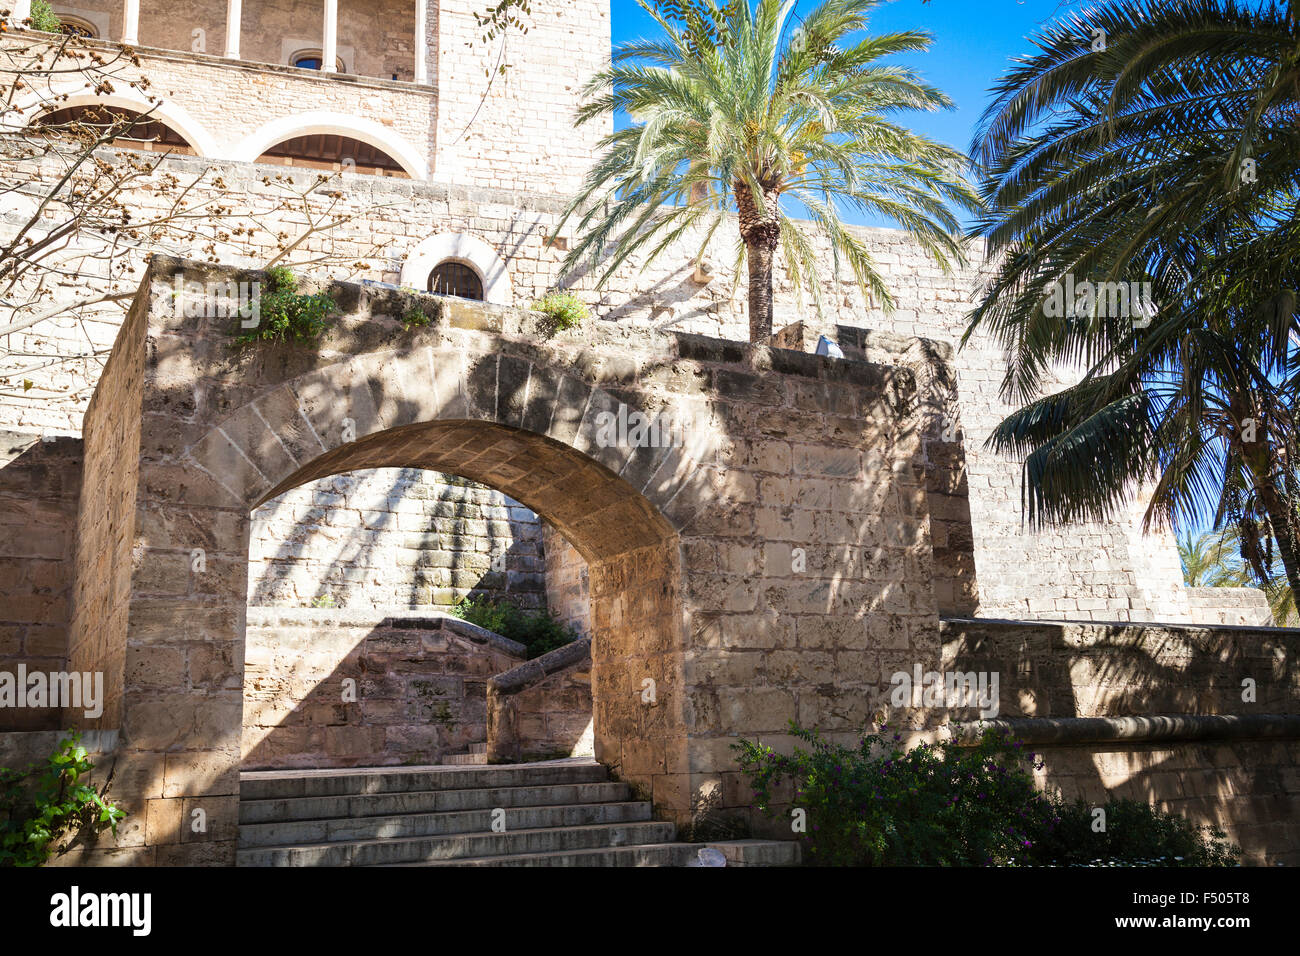 Some impressions of Palma de Mallorca - Stock Image